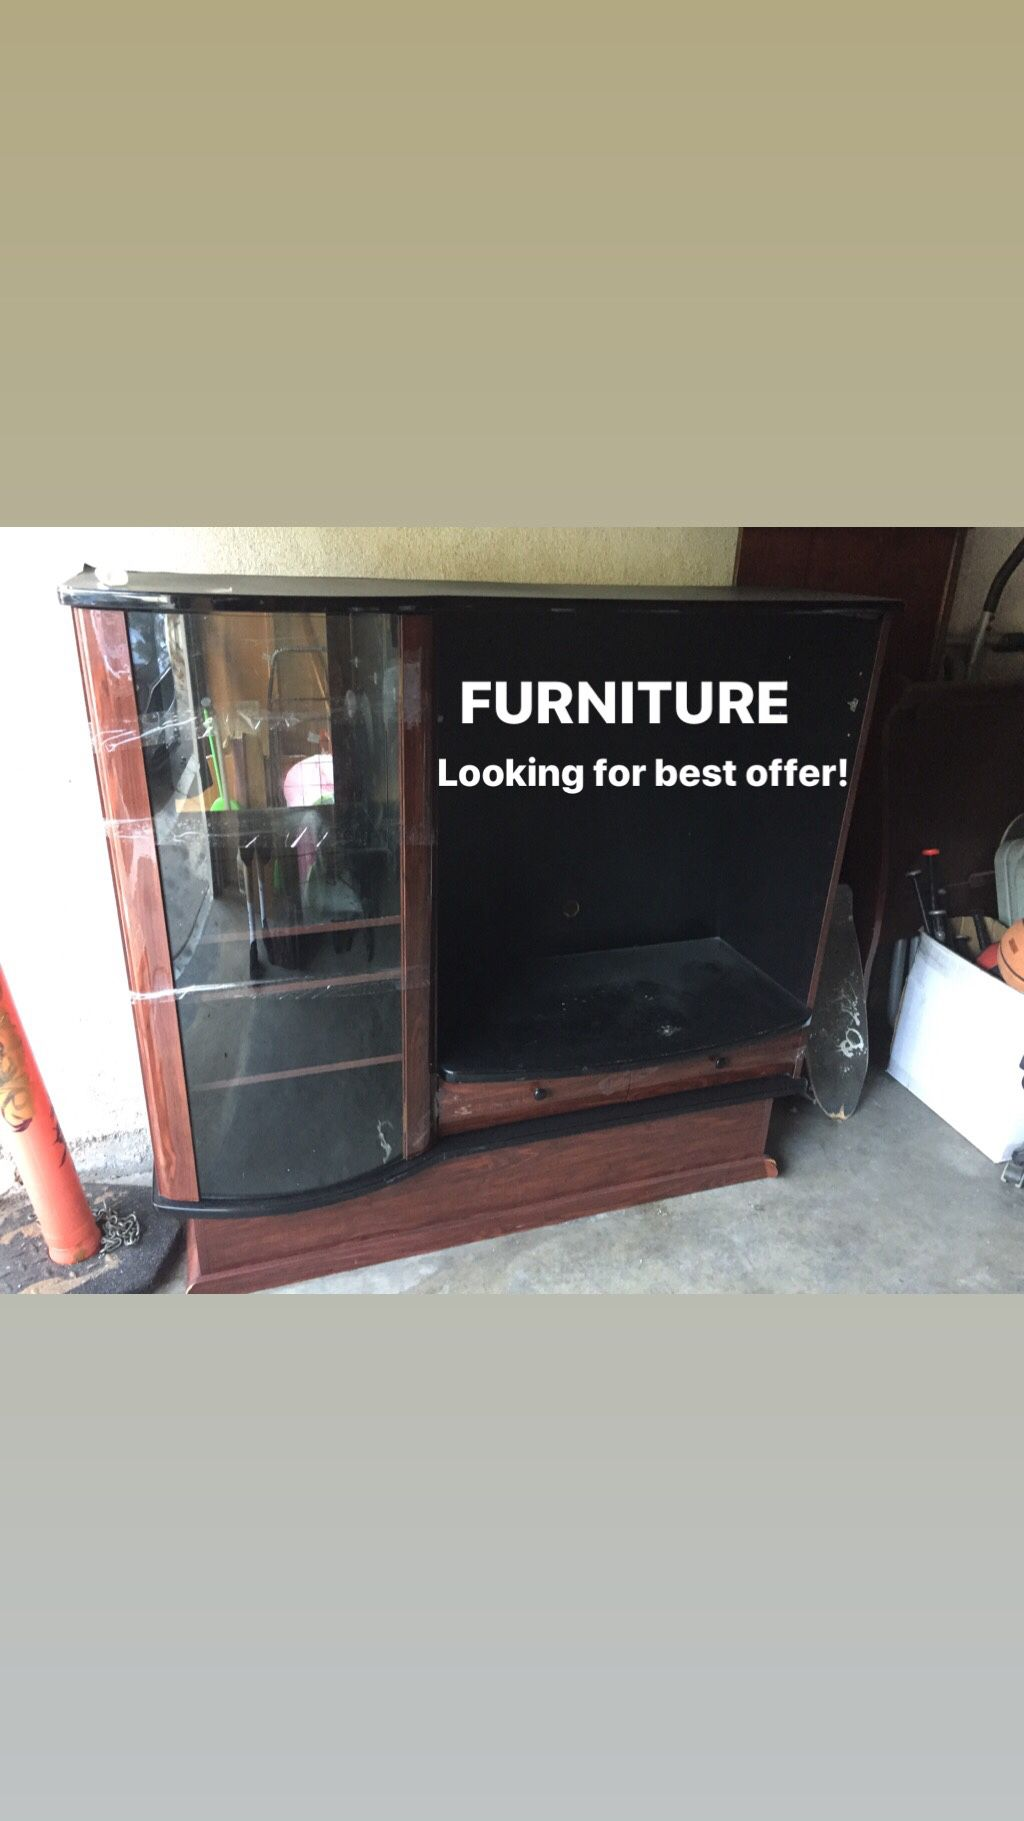 Heavy furniture looking for best offer!